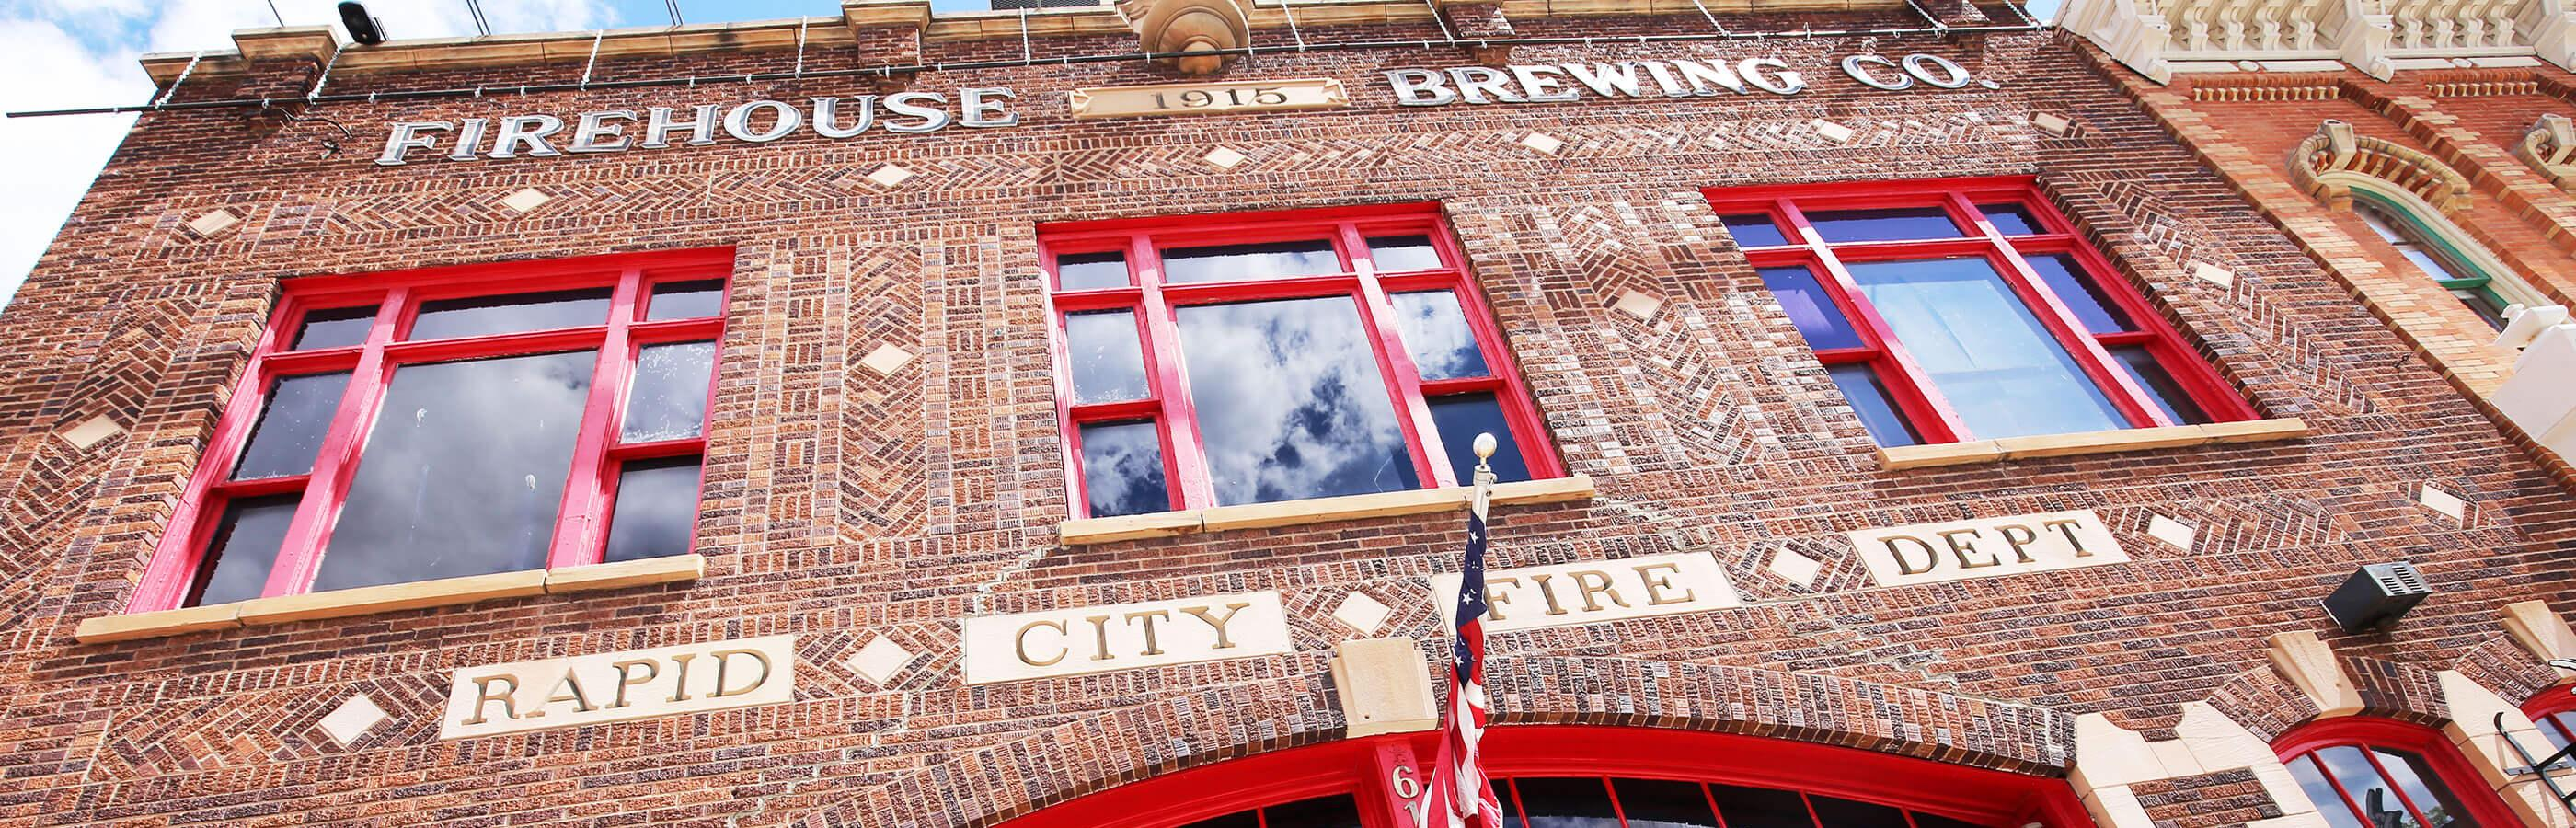 Exterior of the Firehouse Brewing Co. in Downtown Rapid City